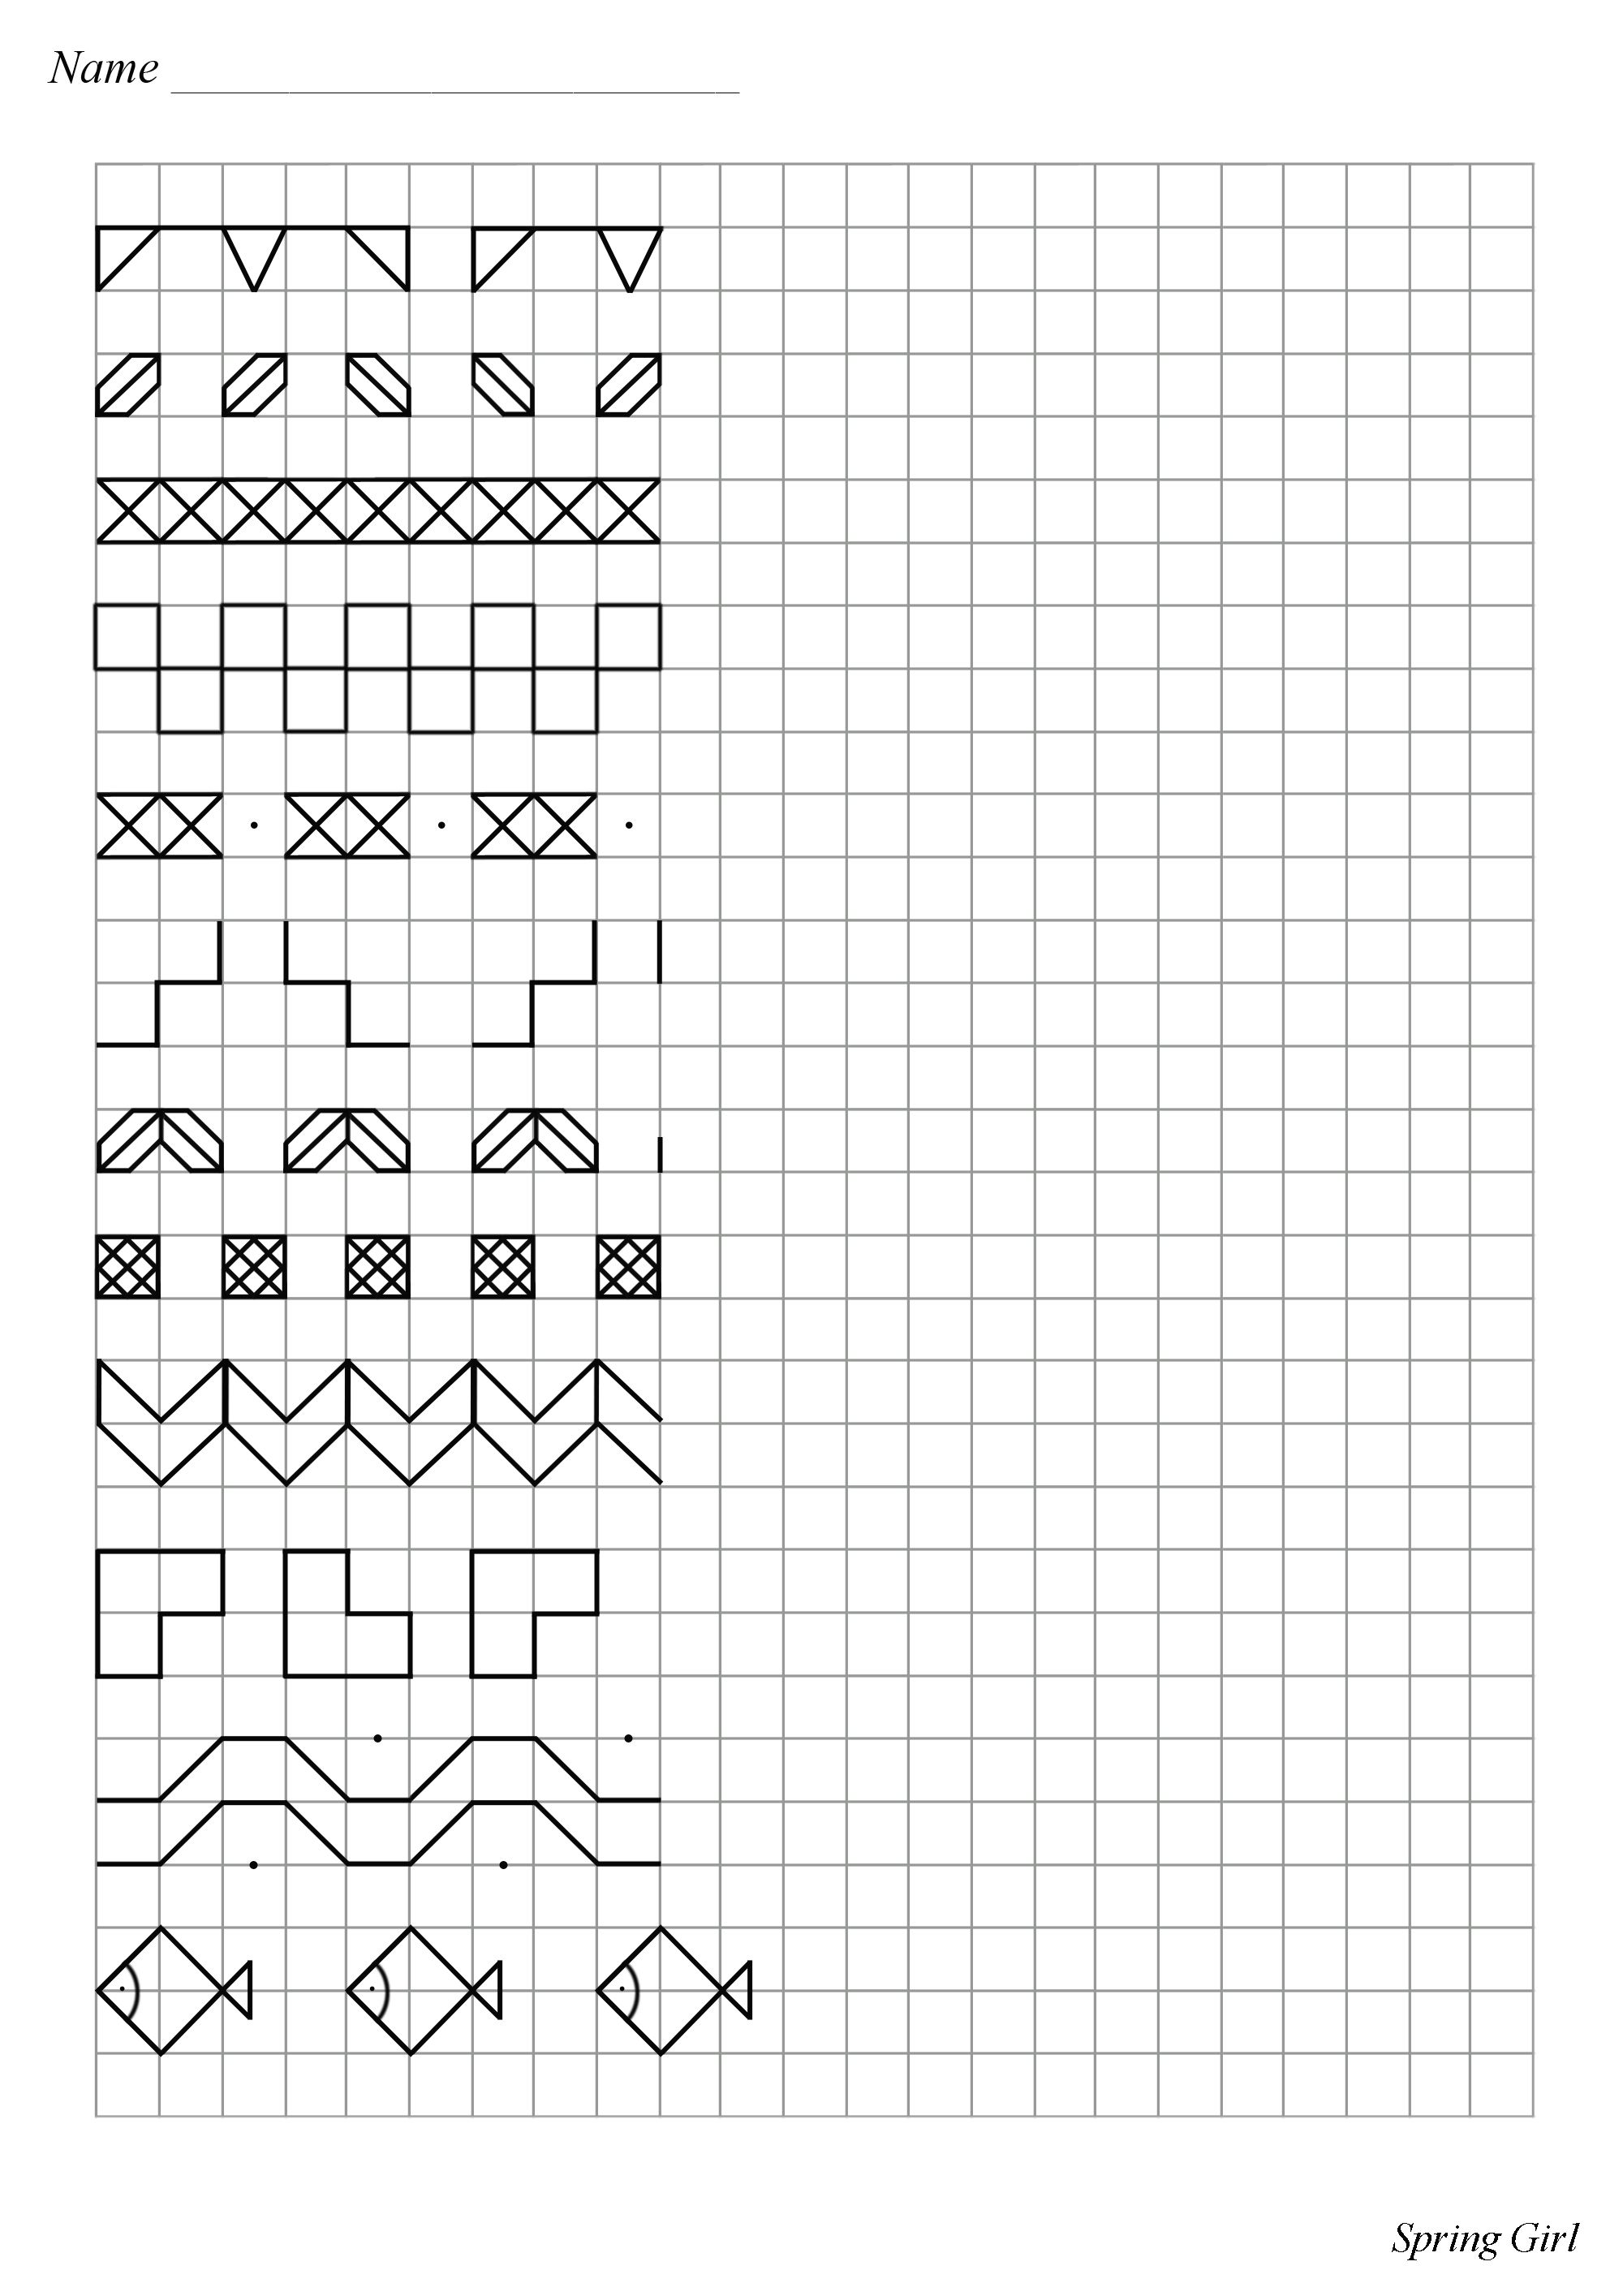 hight resolution of 4 Best Coordinate Worksheets images on Best Worksheets Collection